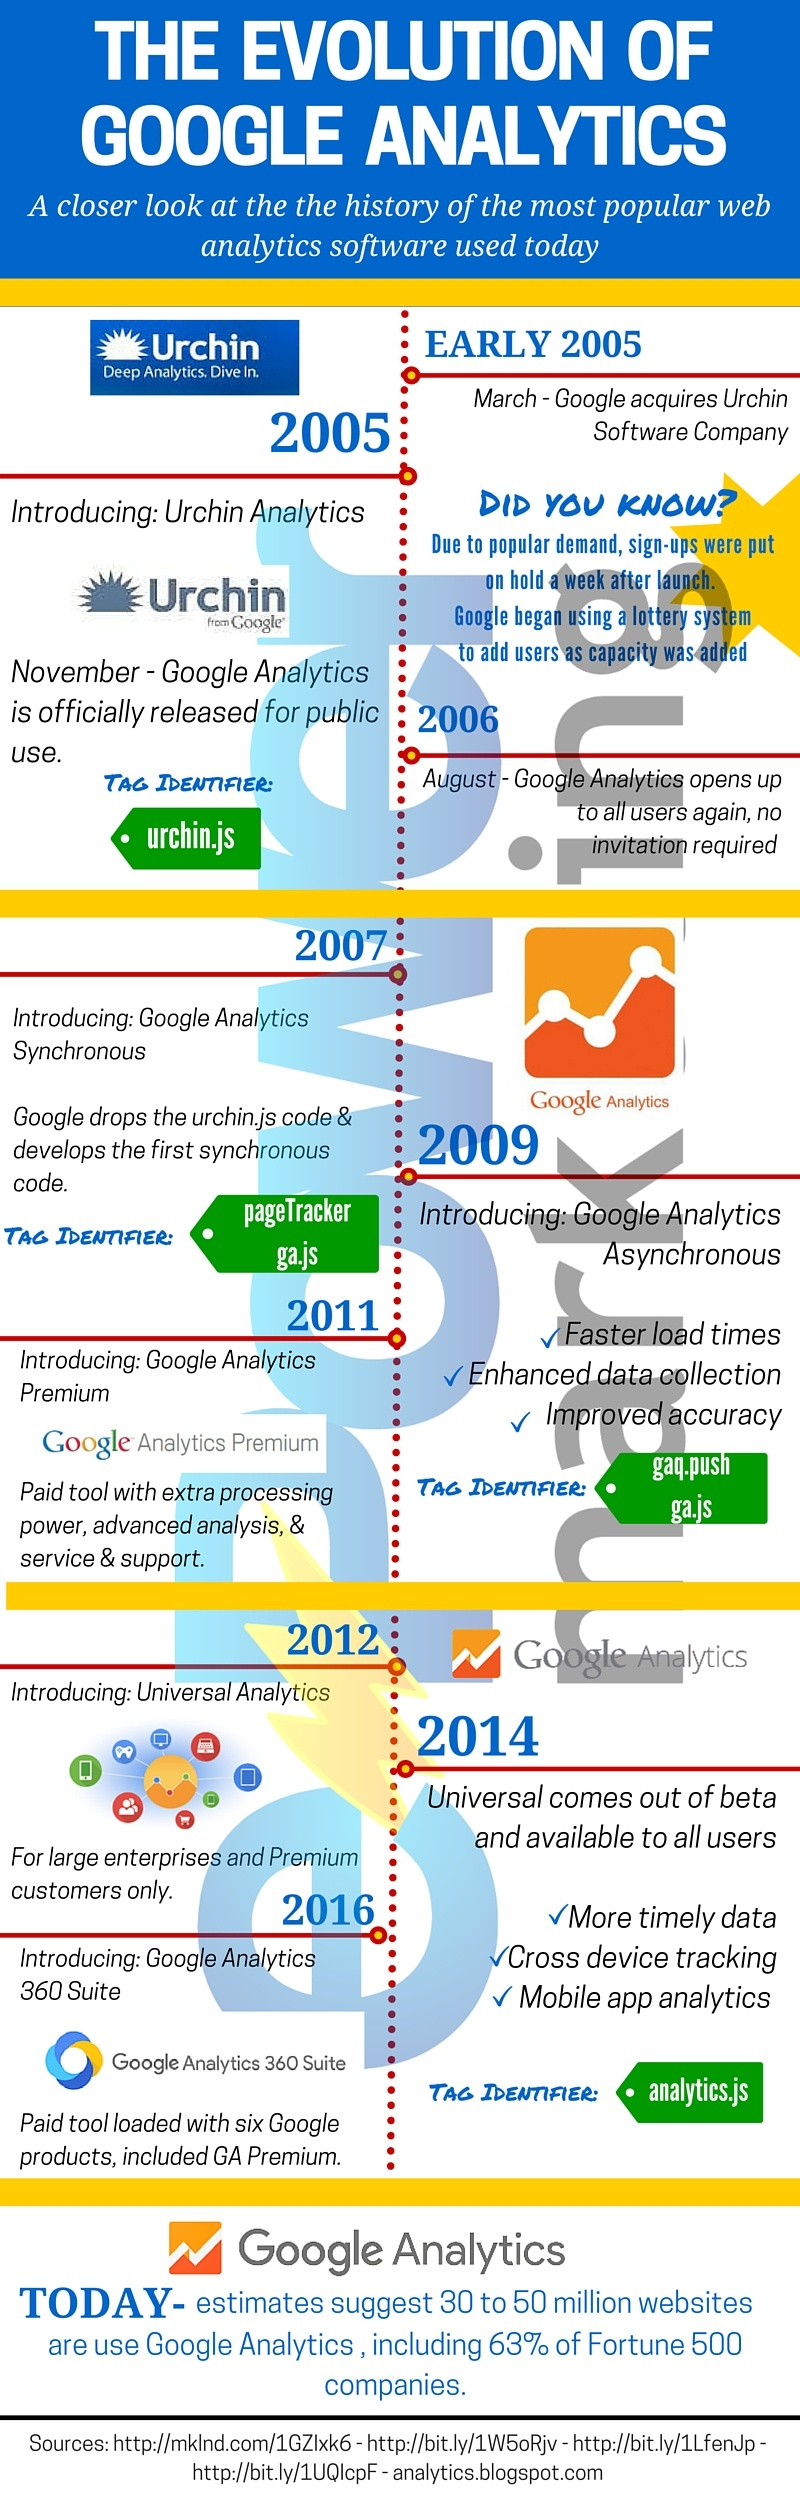 The_Evolution_of_Google_Analytics-1.png